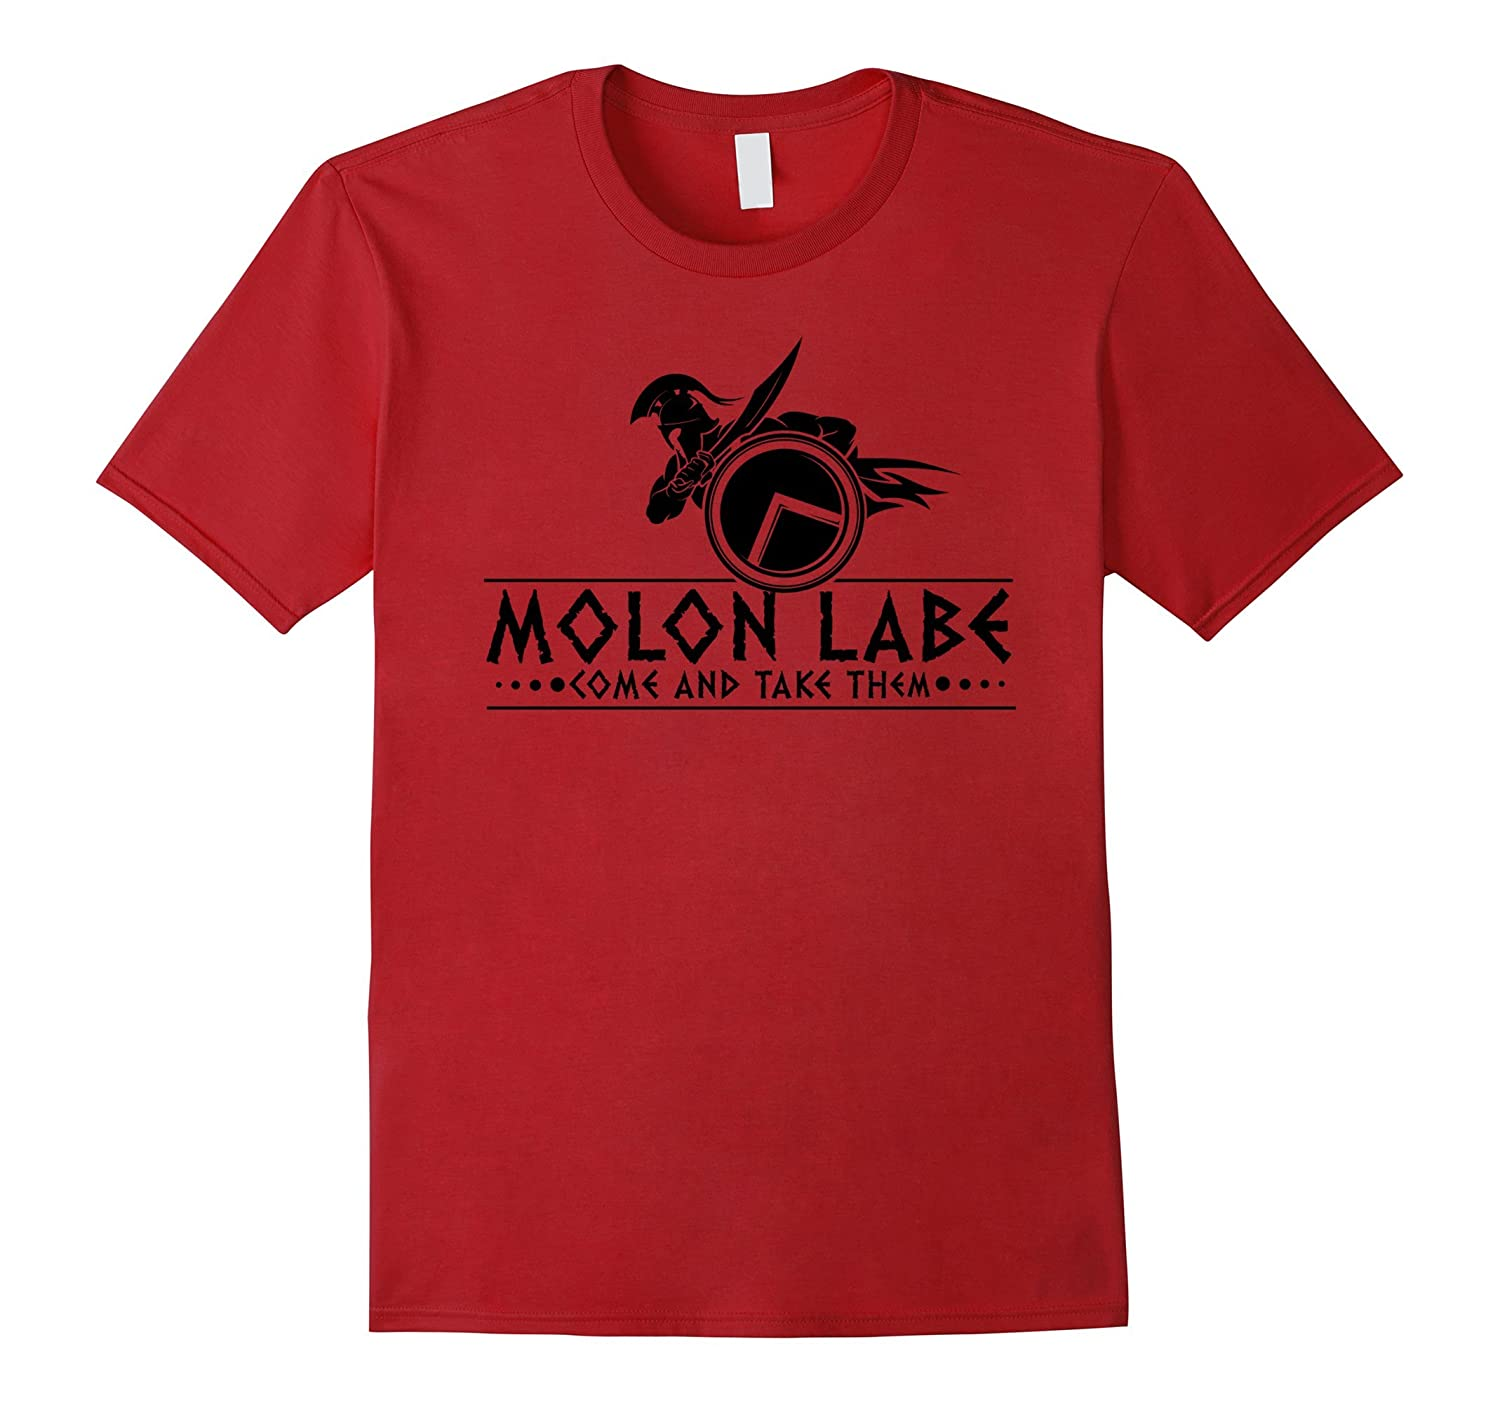 Molon Labe Spartan Warrior Come And Take Them T-Shirt